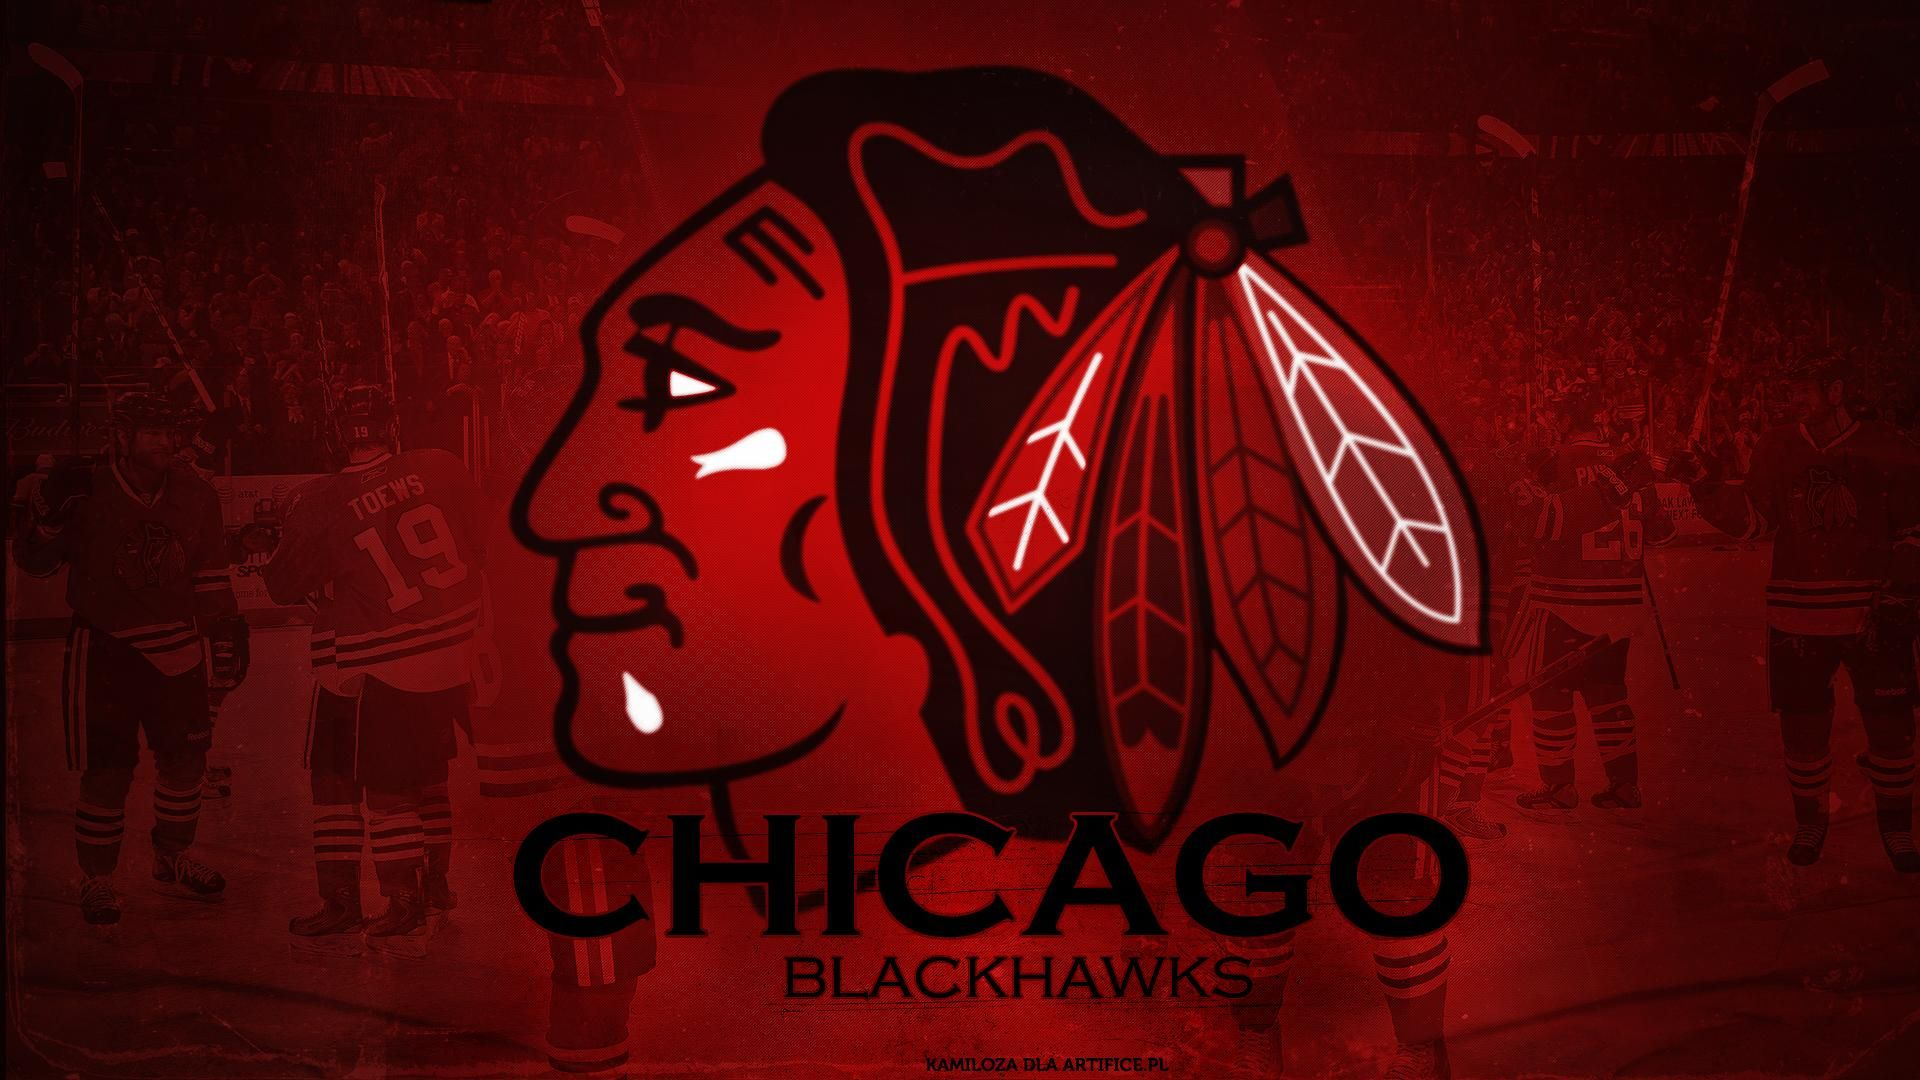 Chicago blackhawks hd wallpapers hd wallpapers pop 12801024 chicago chicago blackhawks hd wallpapers hd wallpapers pop 12801024 chicago blackhawks wallpaper 37 wallpapers voltagebd Image collections